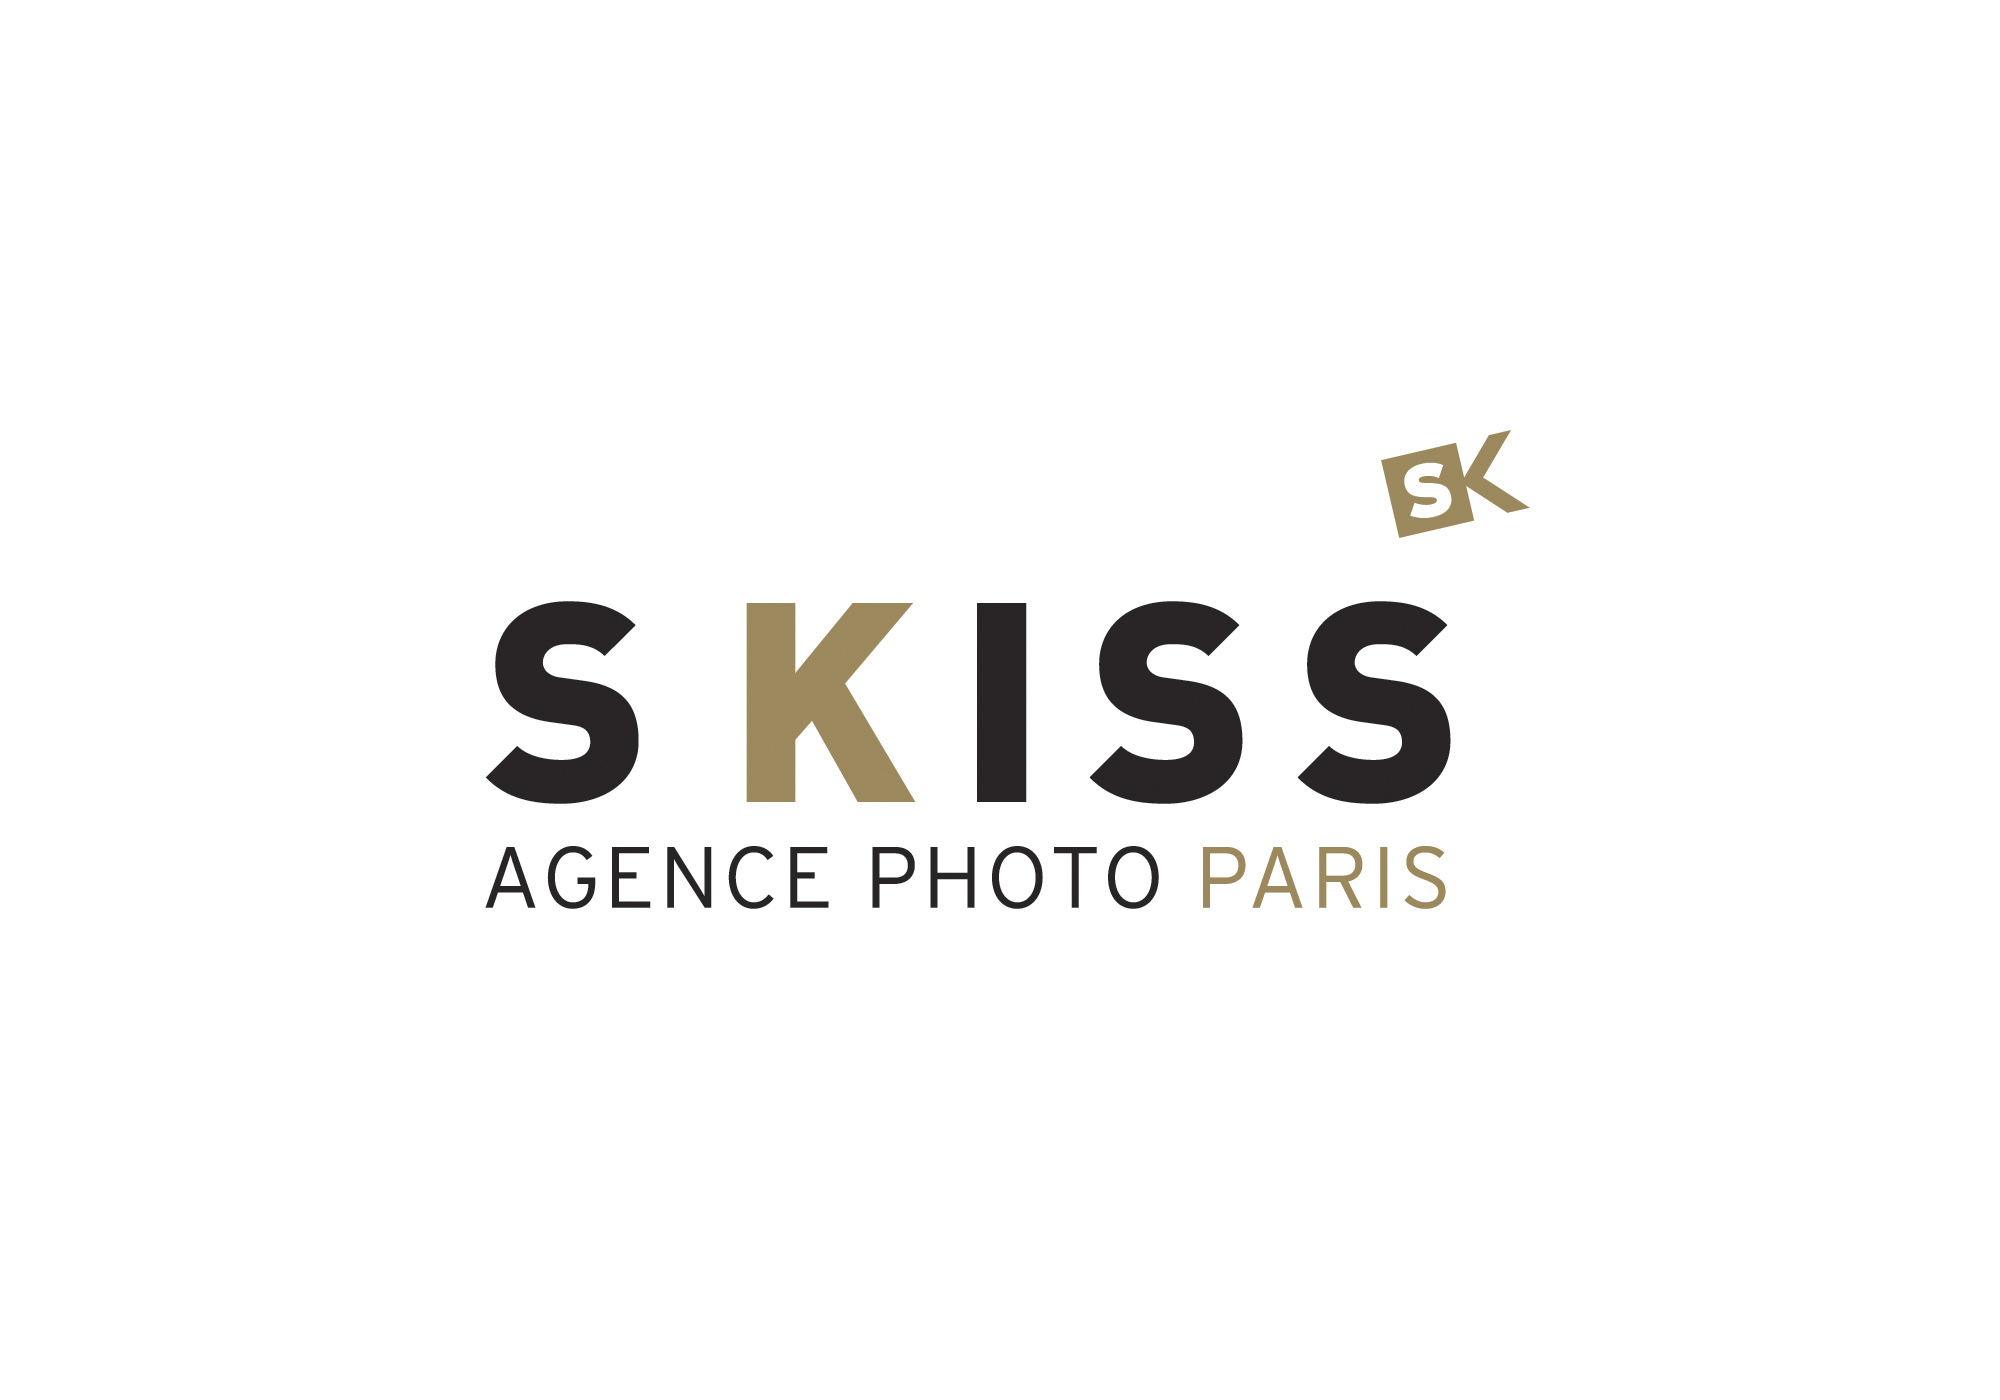 Agence Photo Skiss